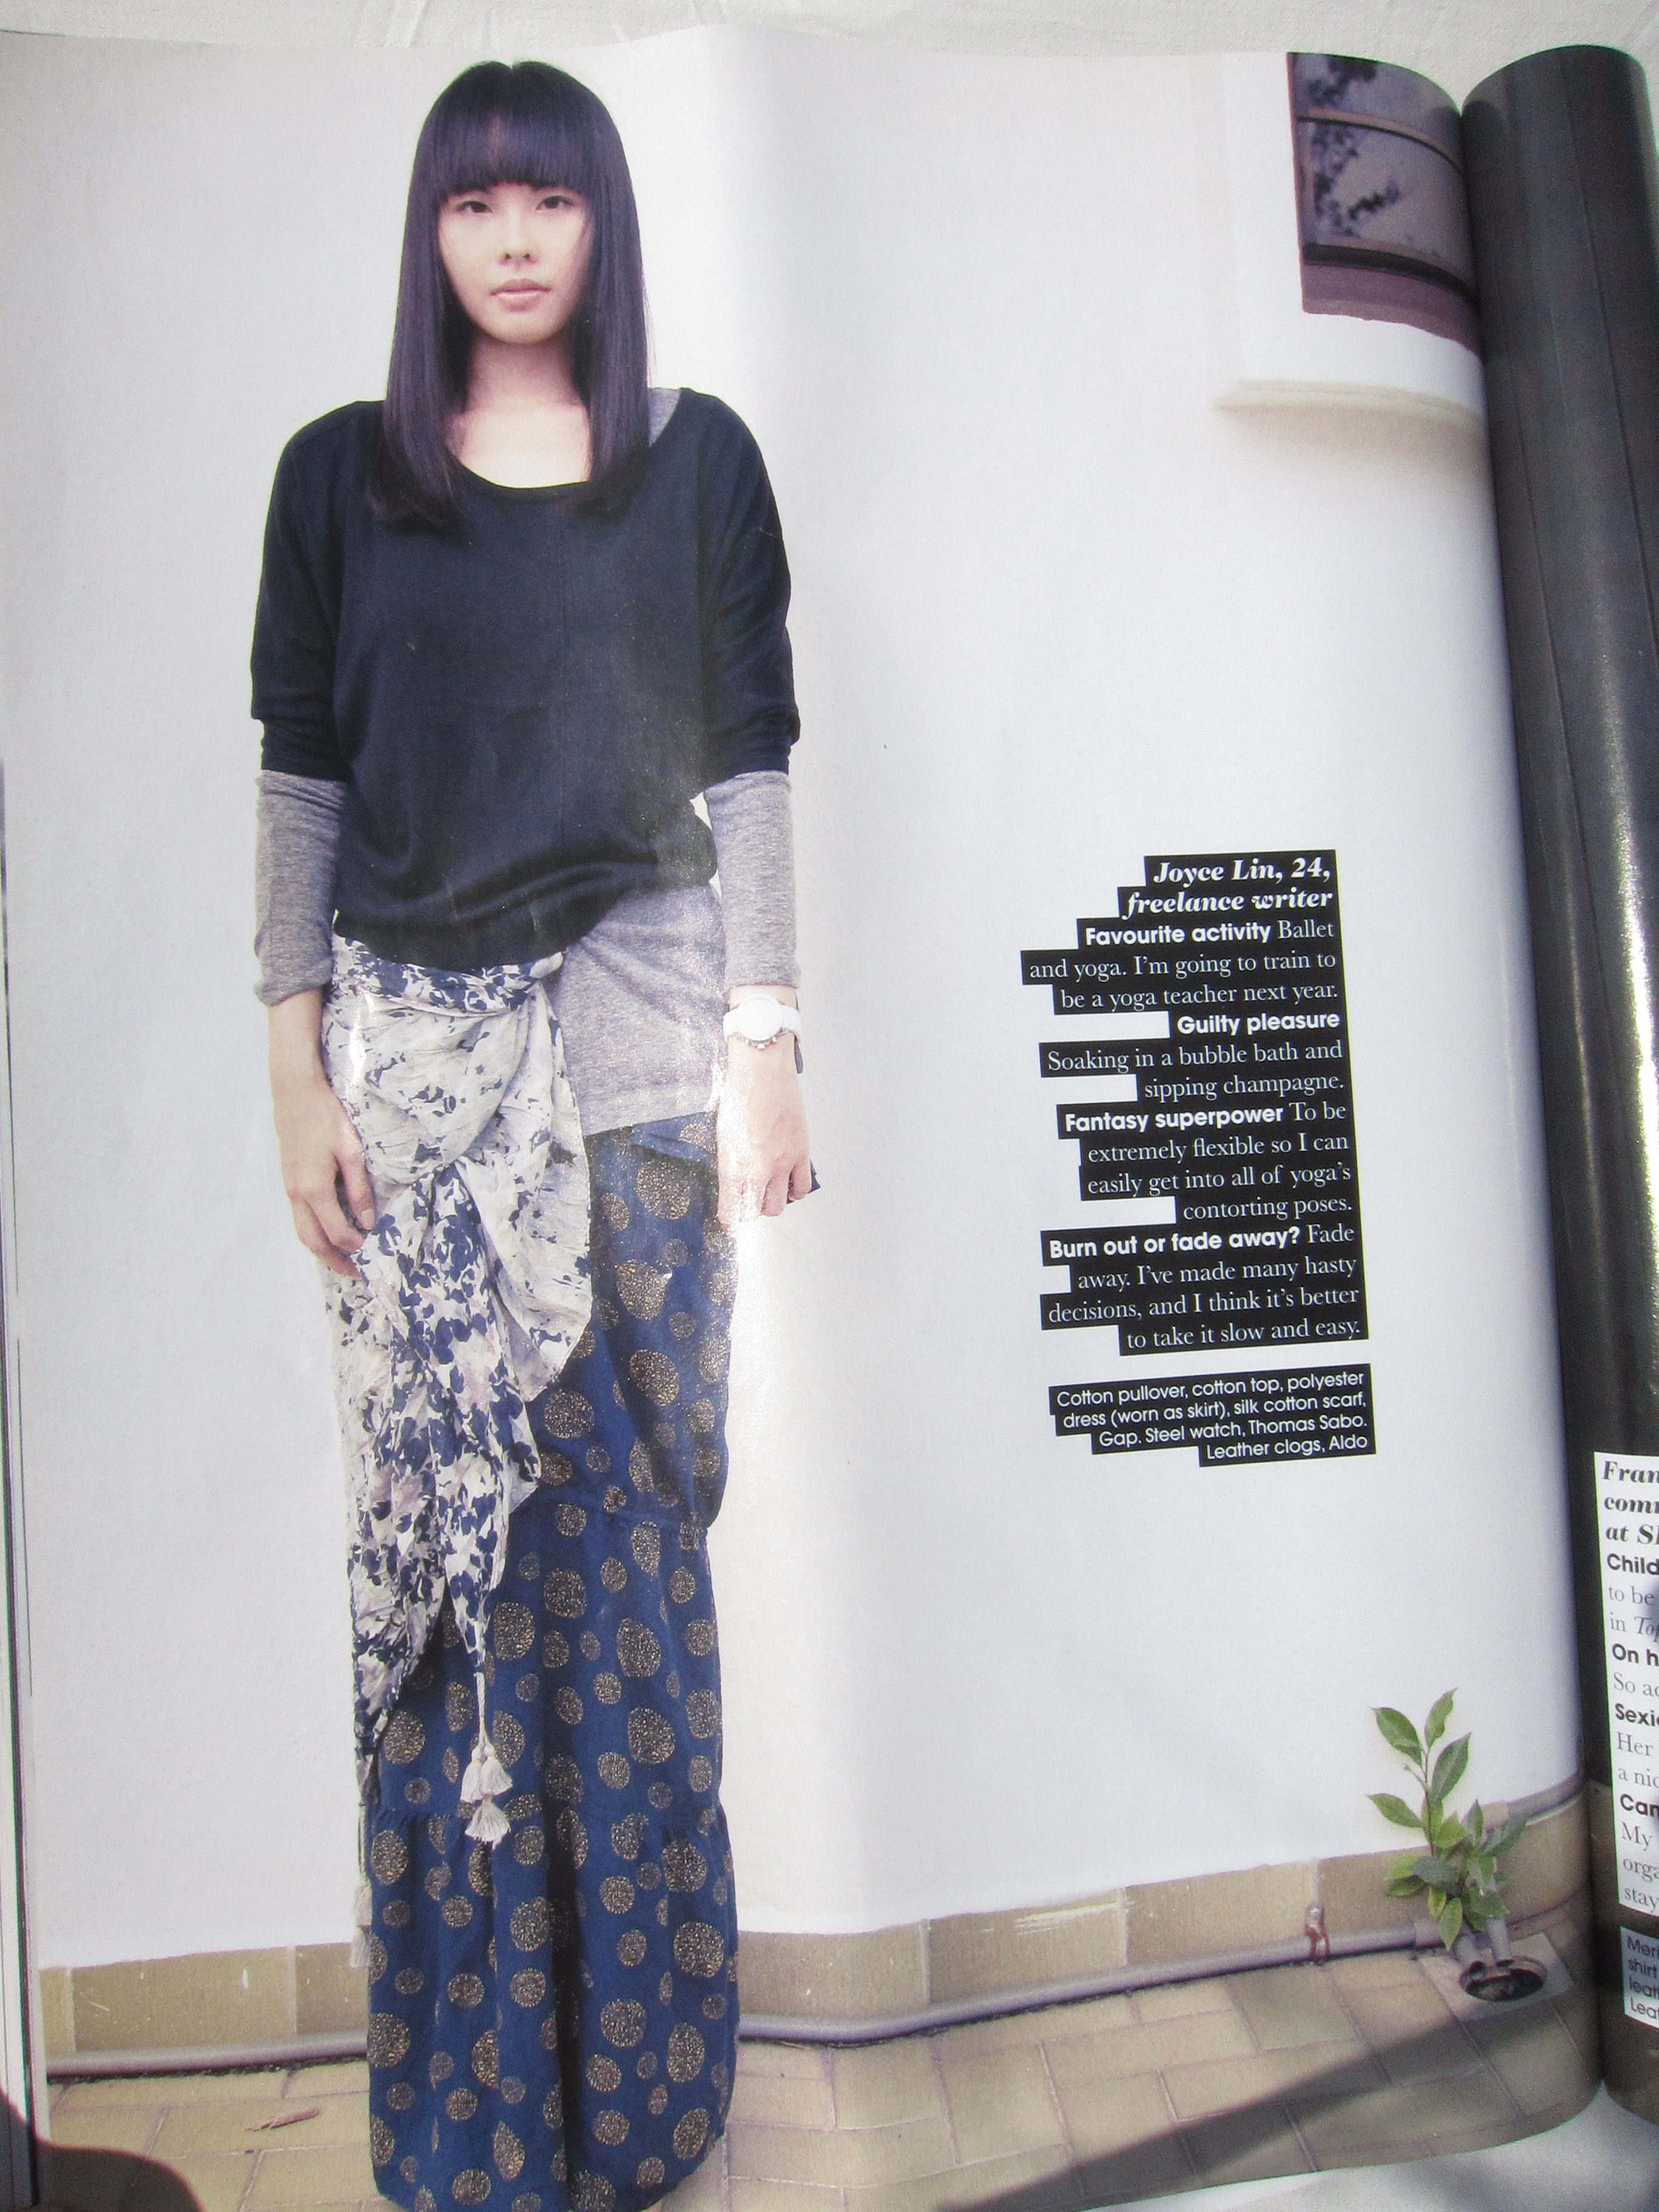 obsessed with this styling of gap clothes out of a thai fashion magazine. Basics in a so not basic way! Also loving that haircut.